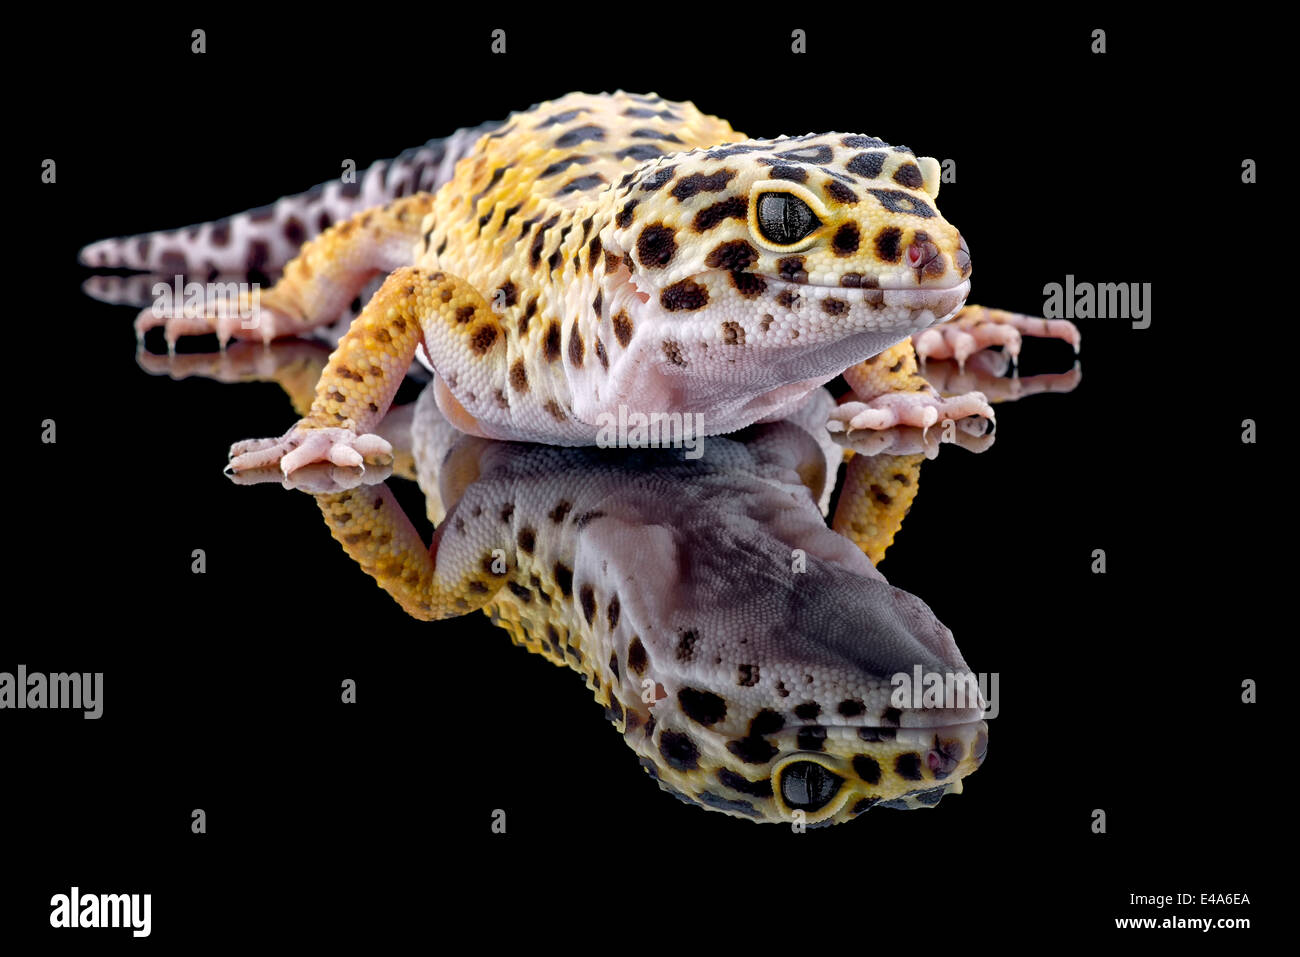 Leopard gecko, Eublepharis macularius, with reflection on black background - Stock Image